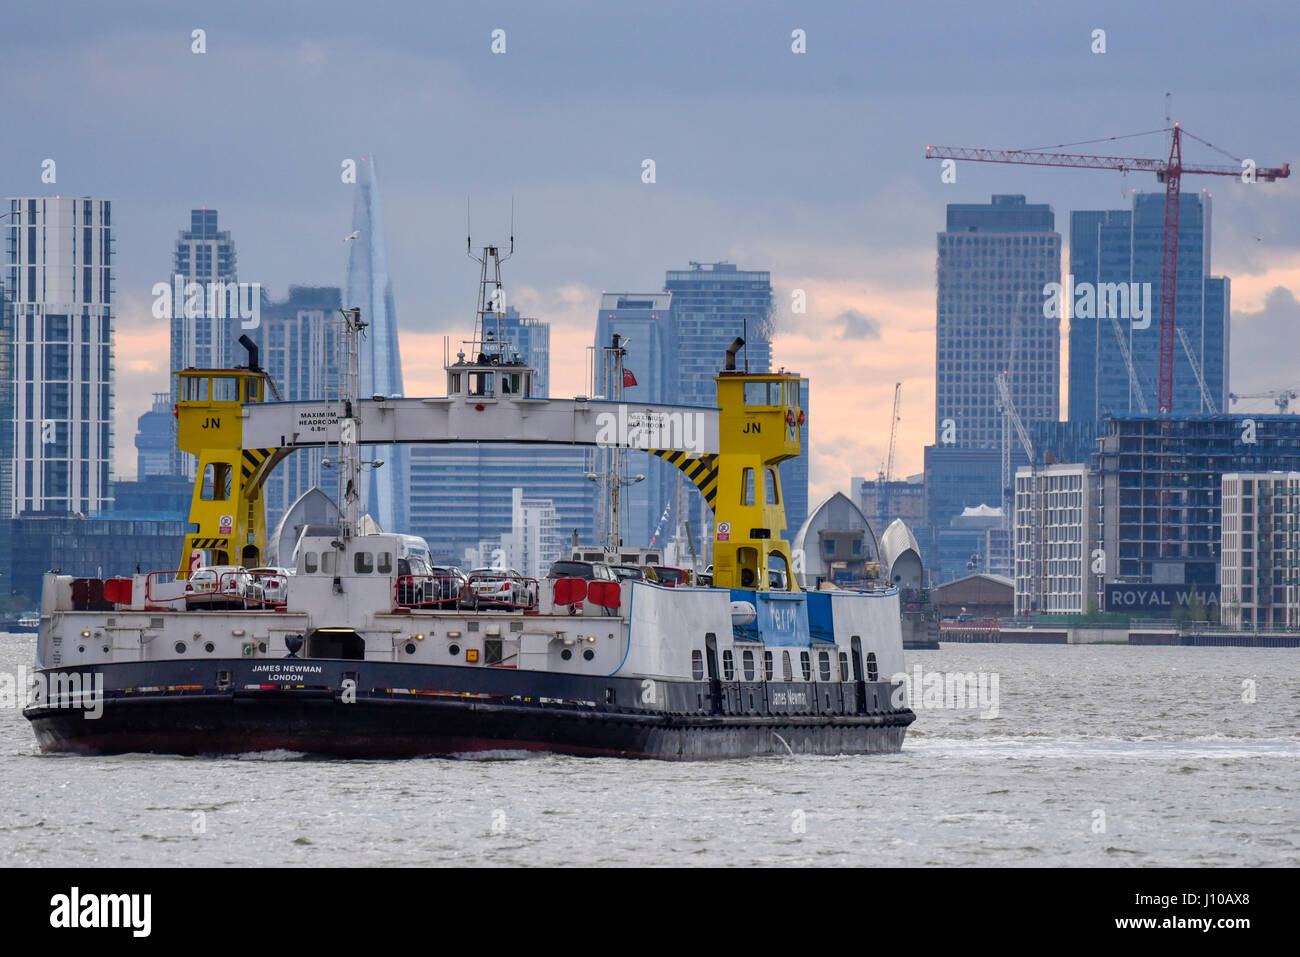 London, UK. 16th Apr, 2017. The Woolwich car ferry crosses the River Thames in front of the distant skyscrapers - Stock Image